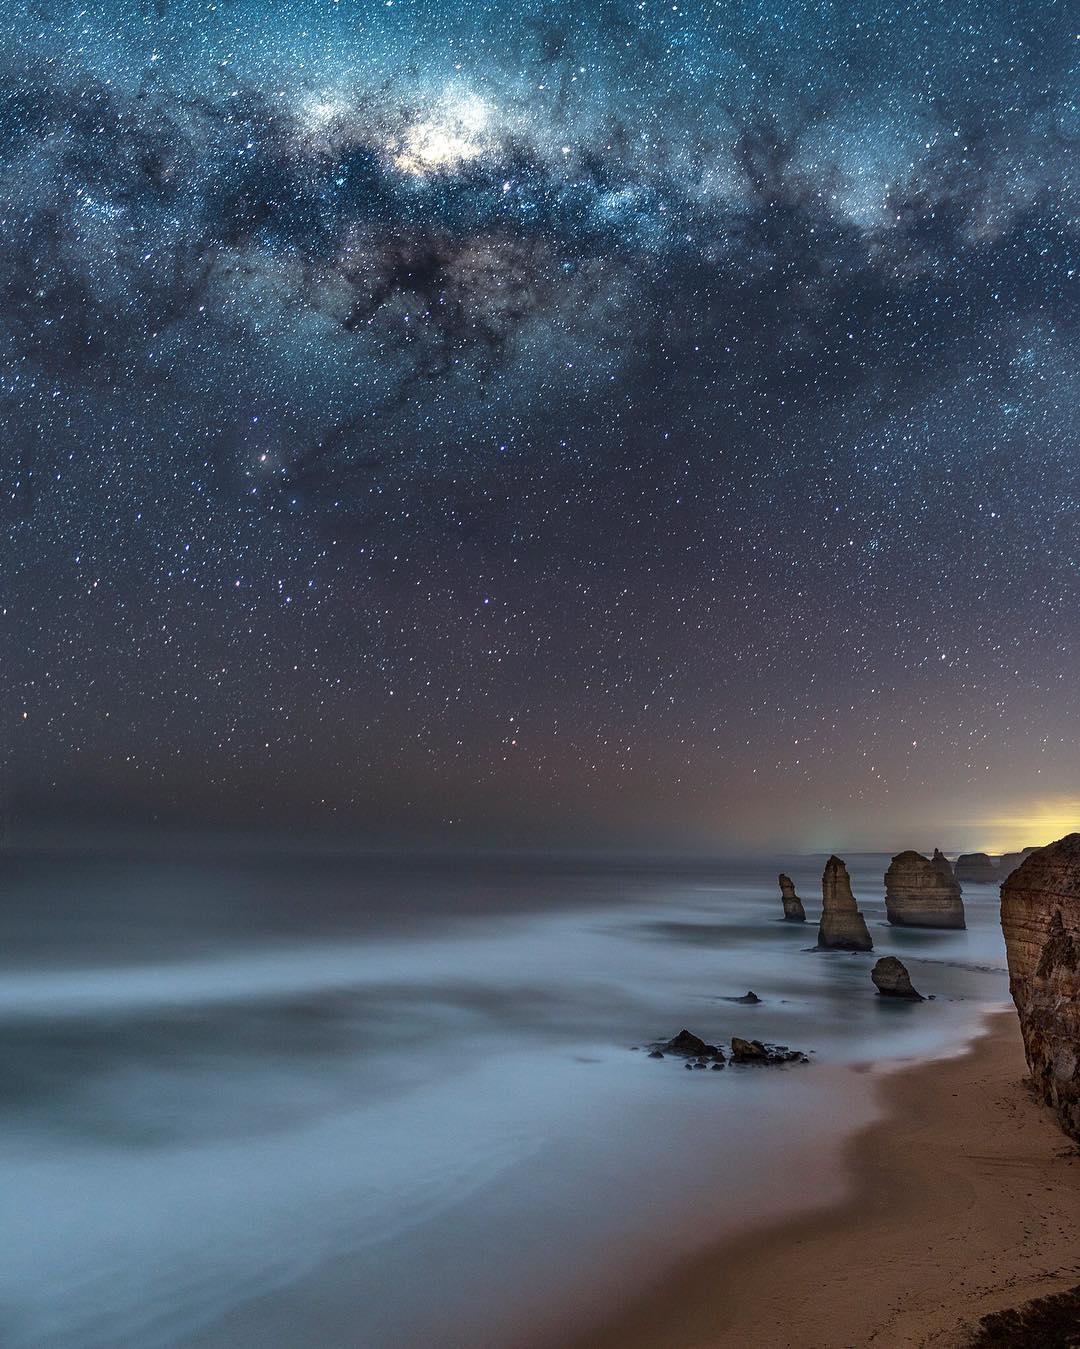 Gorgeous Nightscape and Astrophotography by Craig Richards